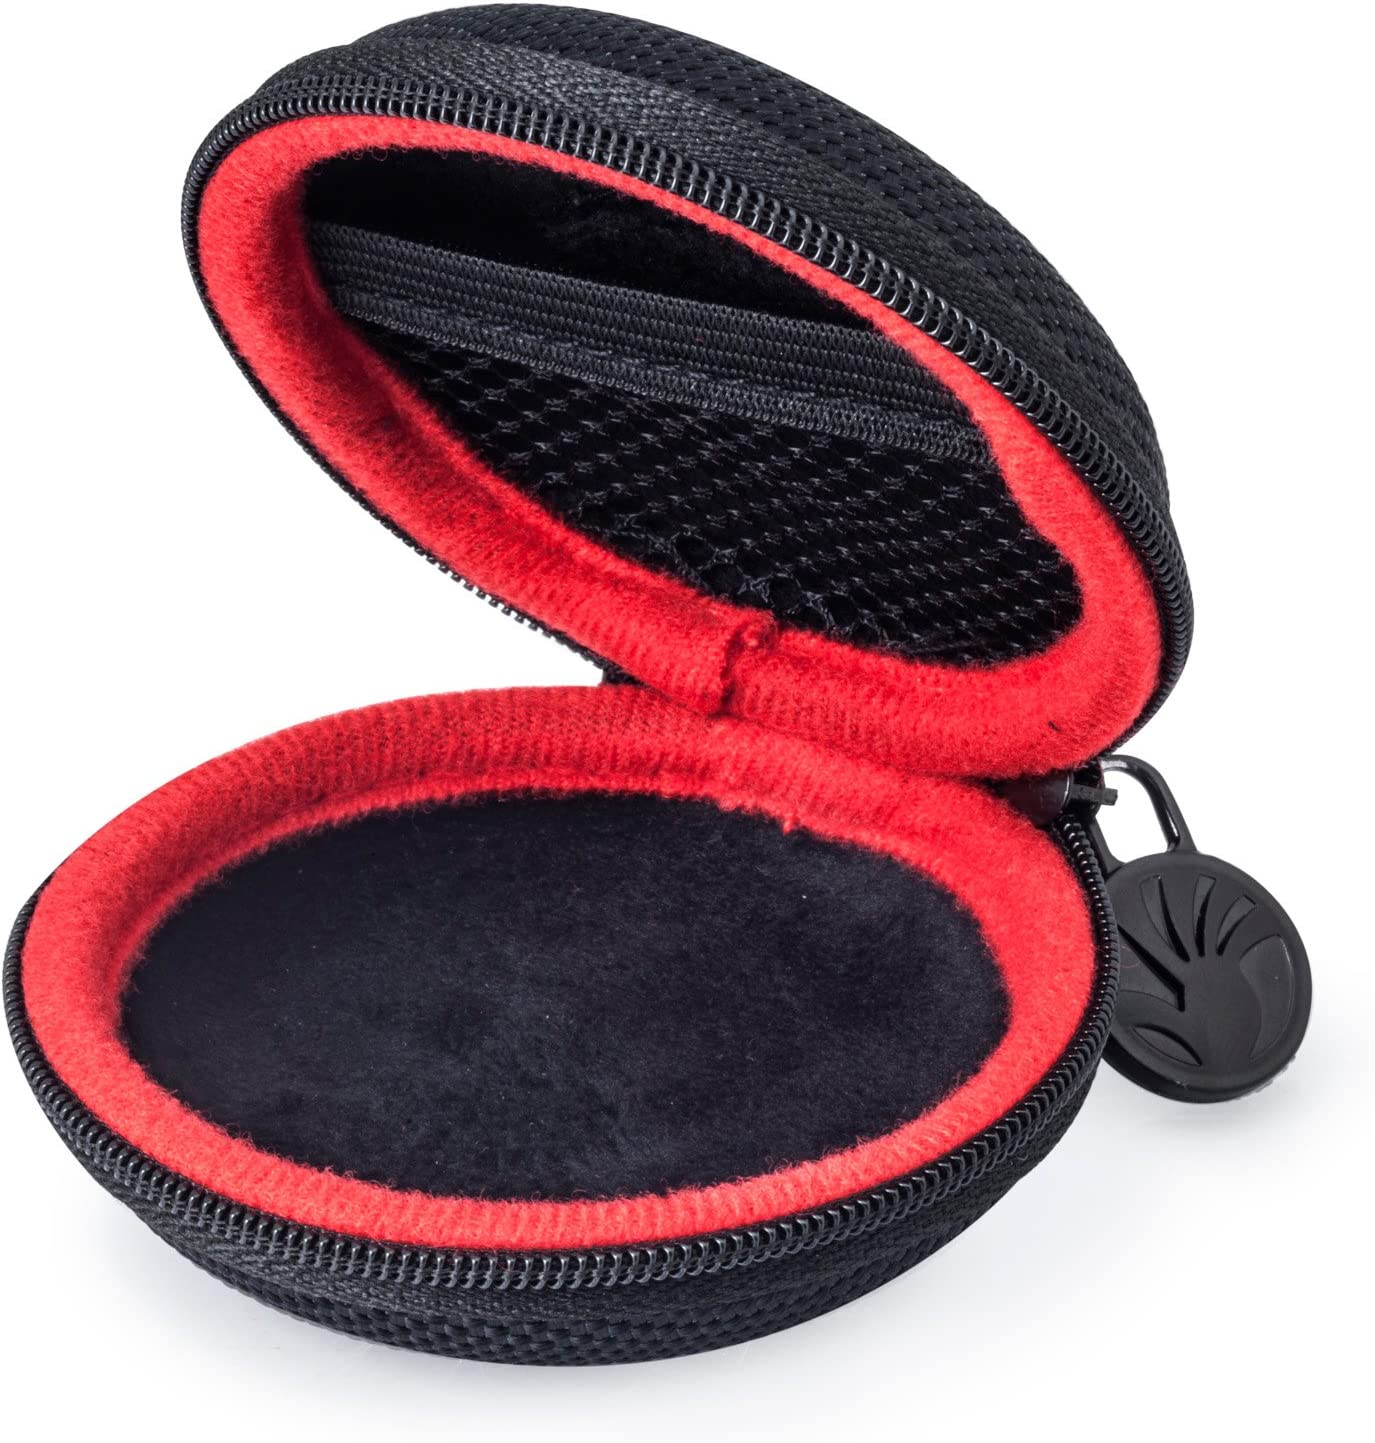 Earbud Case Protective Hard Travel Carrying Case Headphone Case Black Portable Storage Bag for Bluetooth//Wired Headset Earphone Earbuds MP3